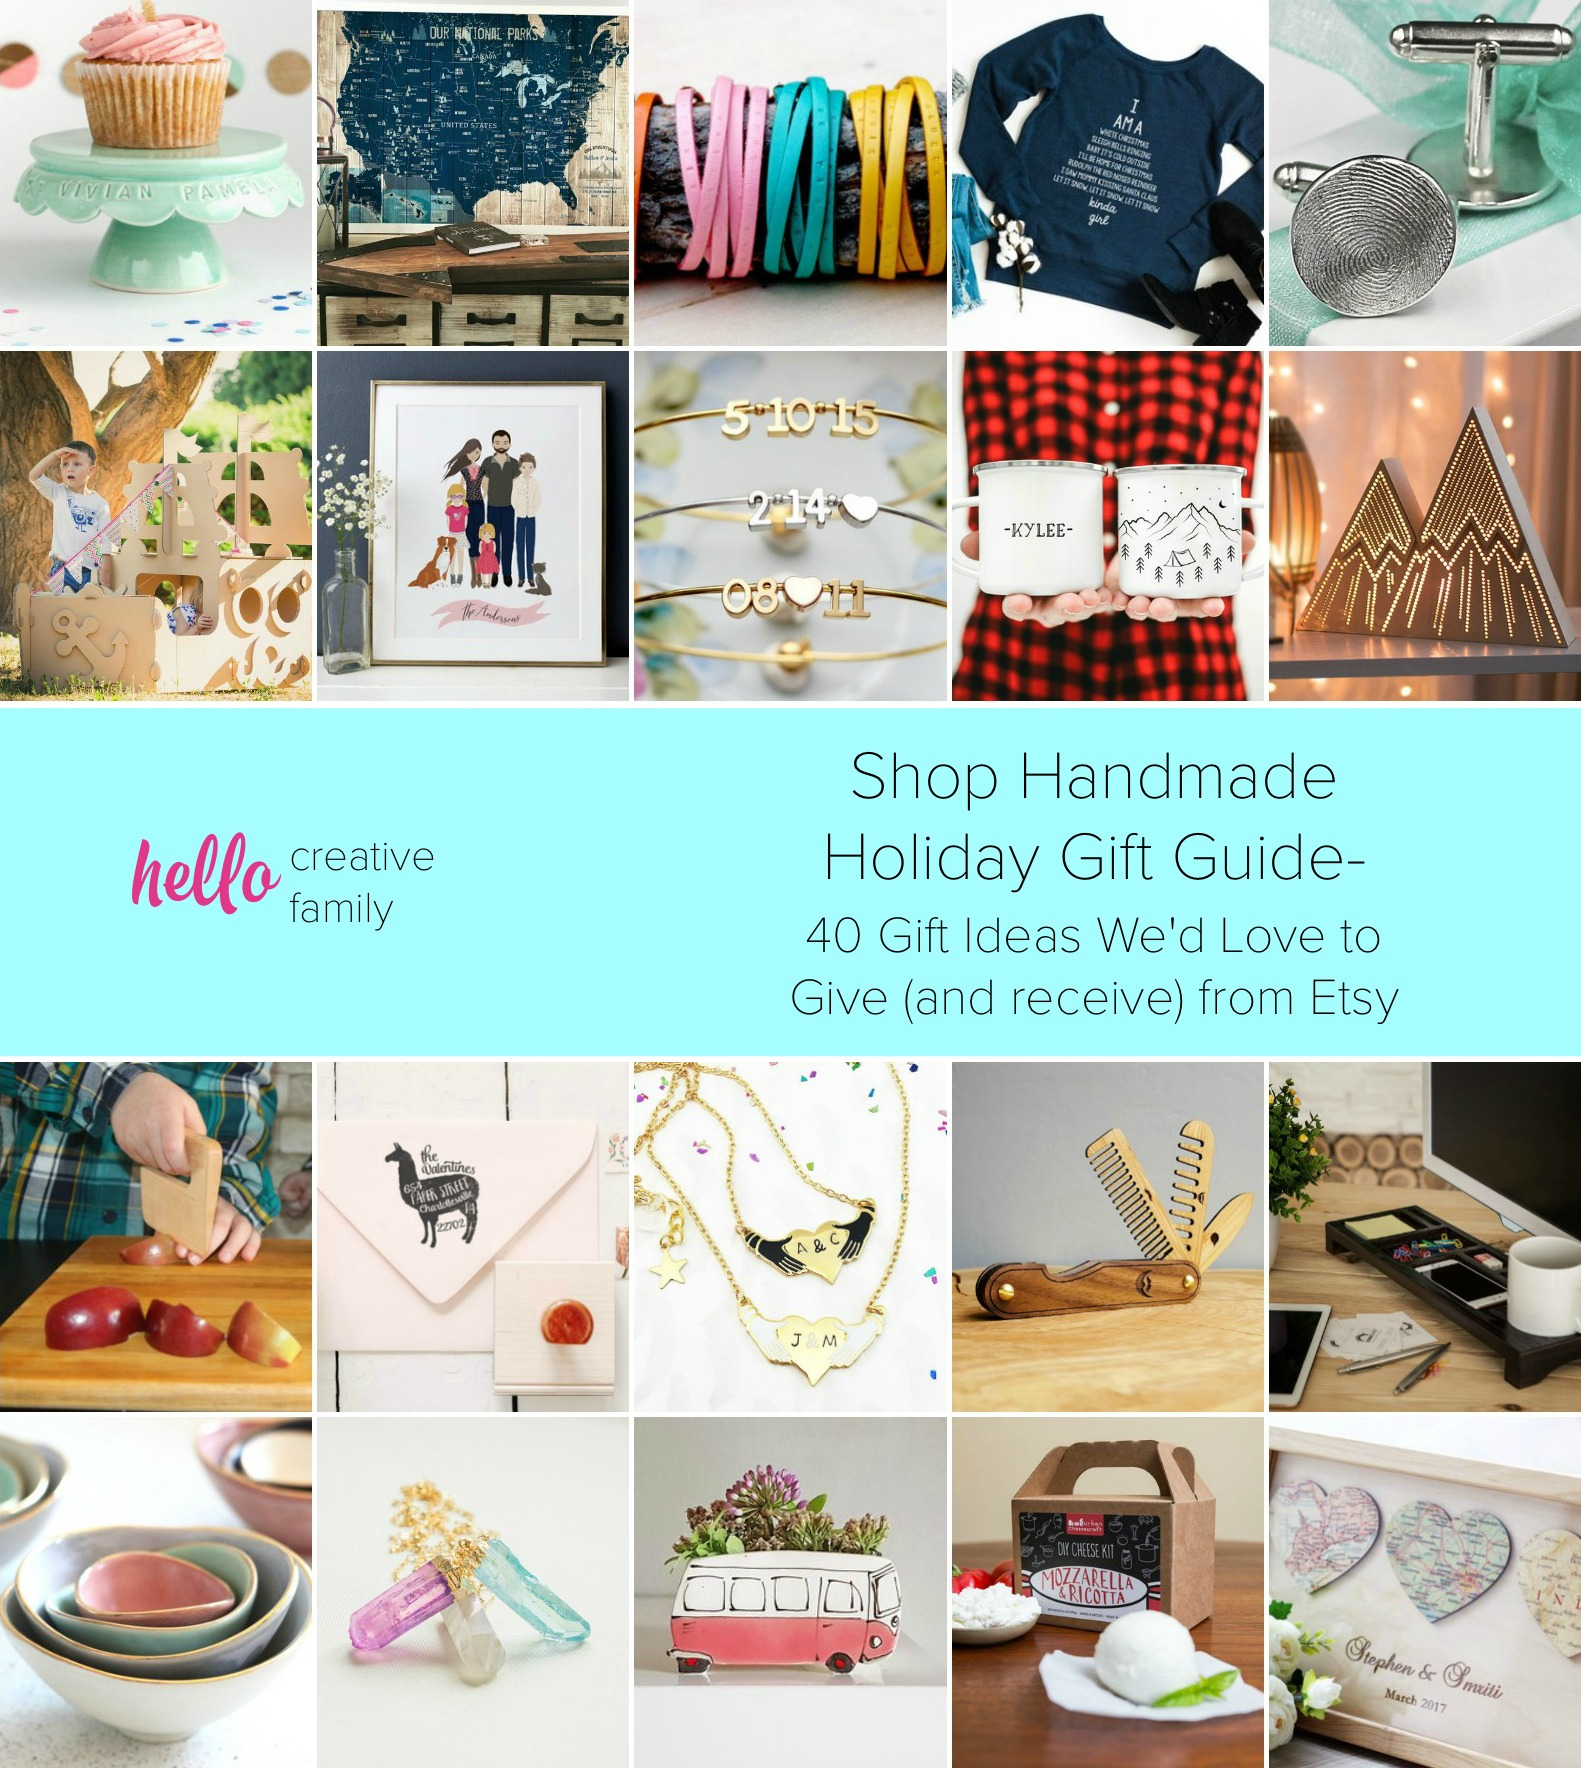 Shop Handmade Holiday Gift Guide- 40 Gift Ideas We'd Love to Give (and receive) from Etsy- Handmade gift ideas for men, women, kids and just about everyone on your shopping list!